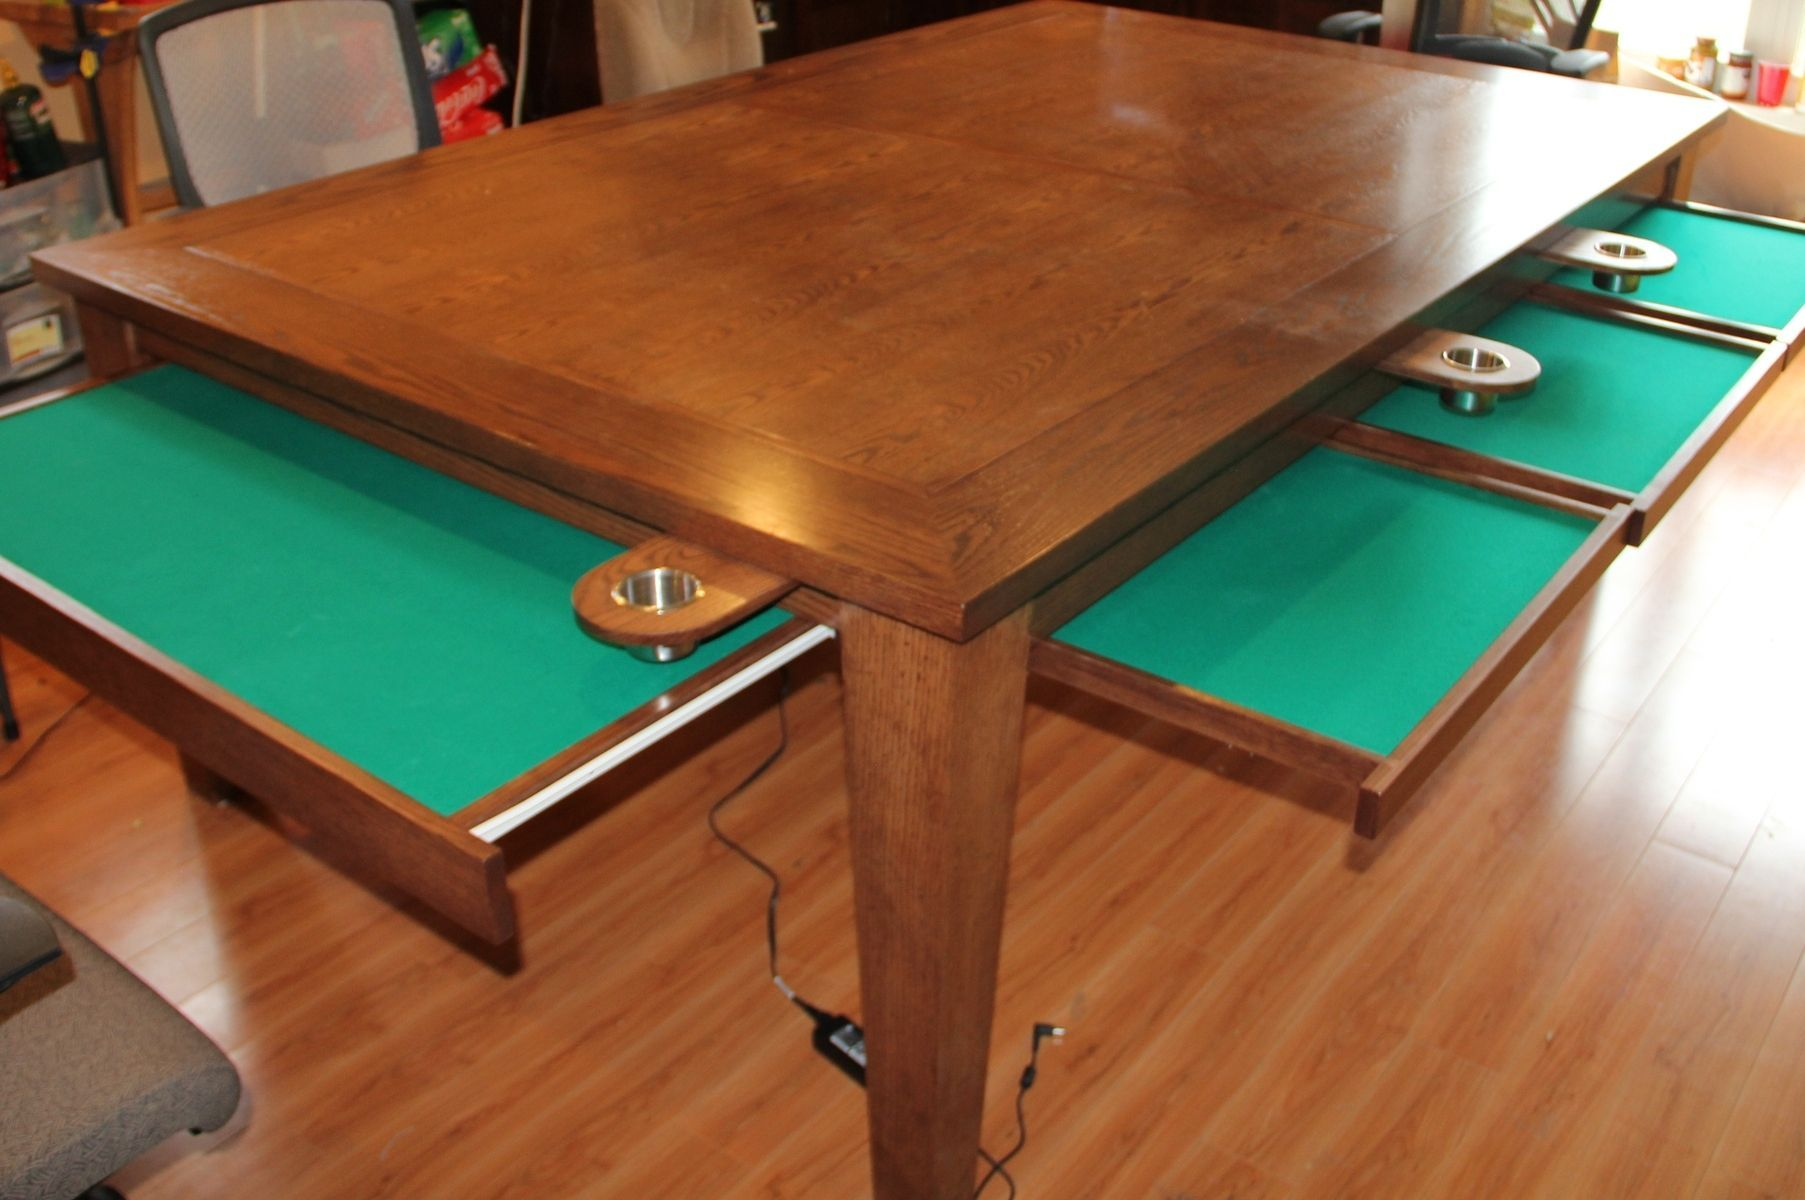 My Custom Game Table Inspired by geekchic